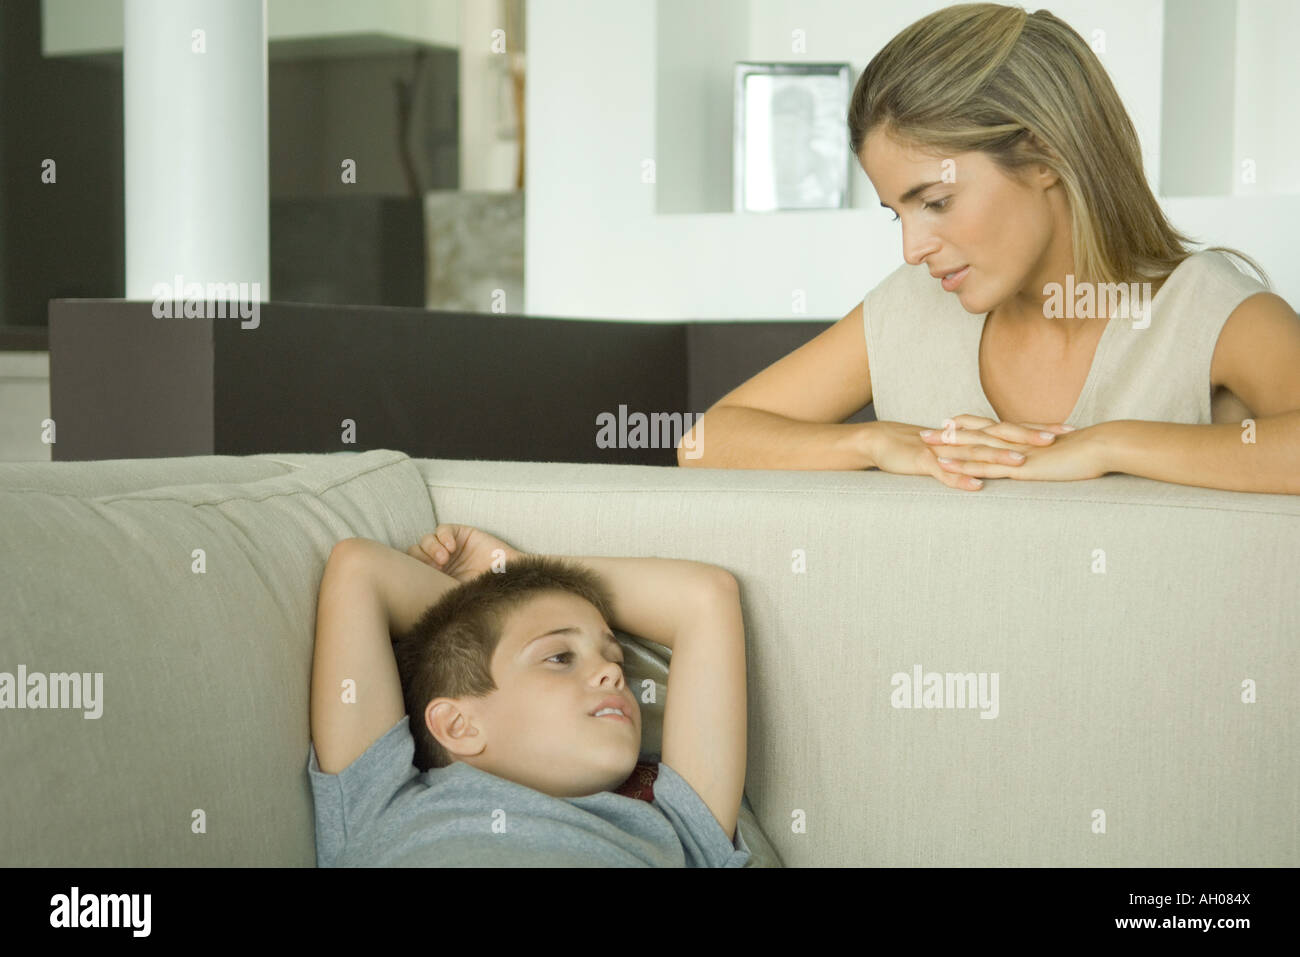 Boy lying on sofa talking to mother looking down at him - Stock Image